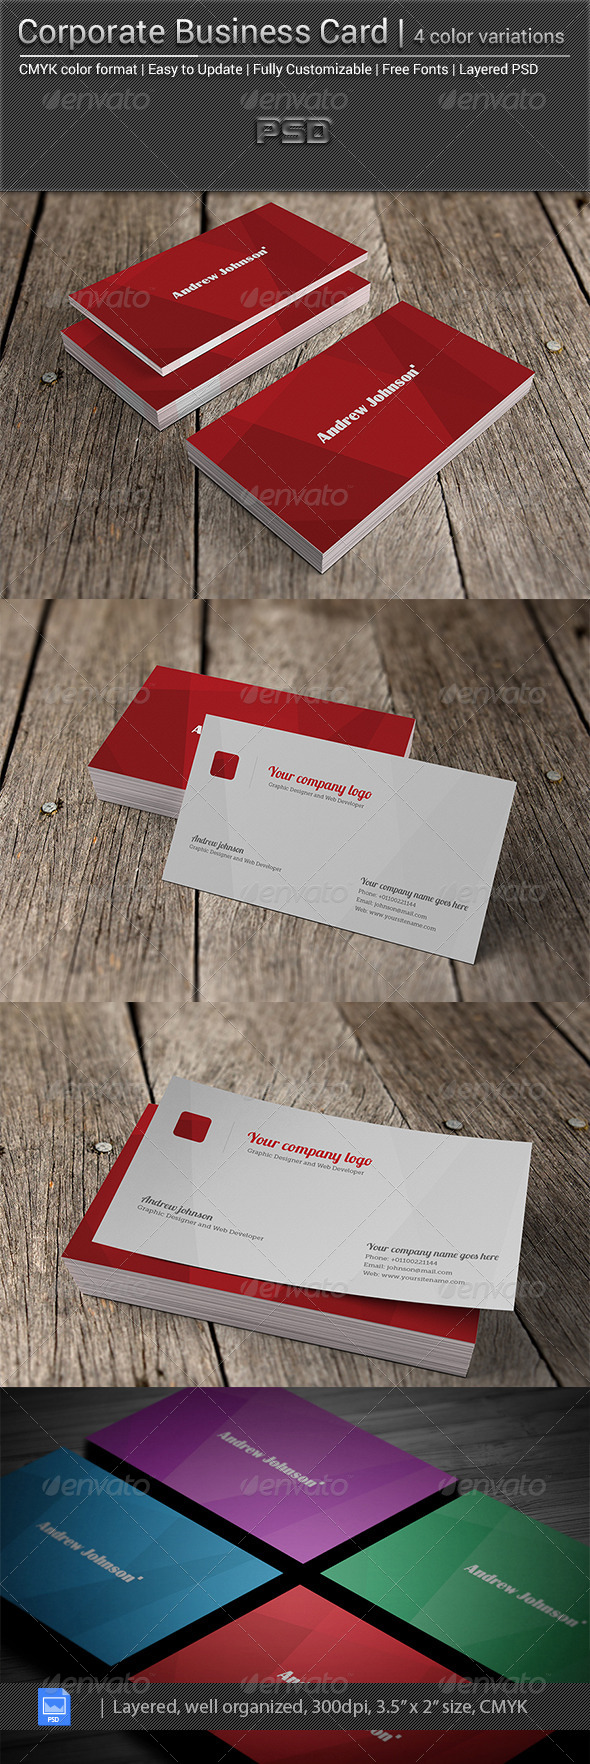 GraphicRiver Corporate Business Card v-0.0.2 5656771